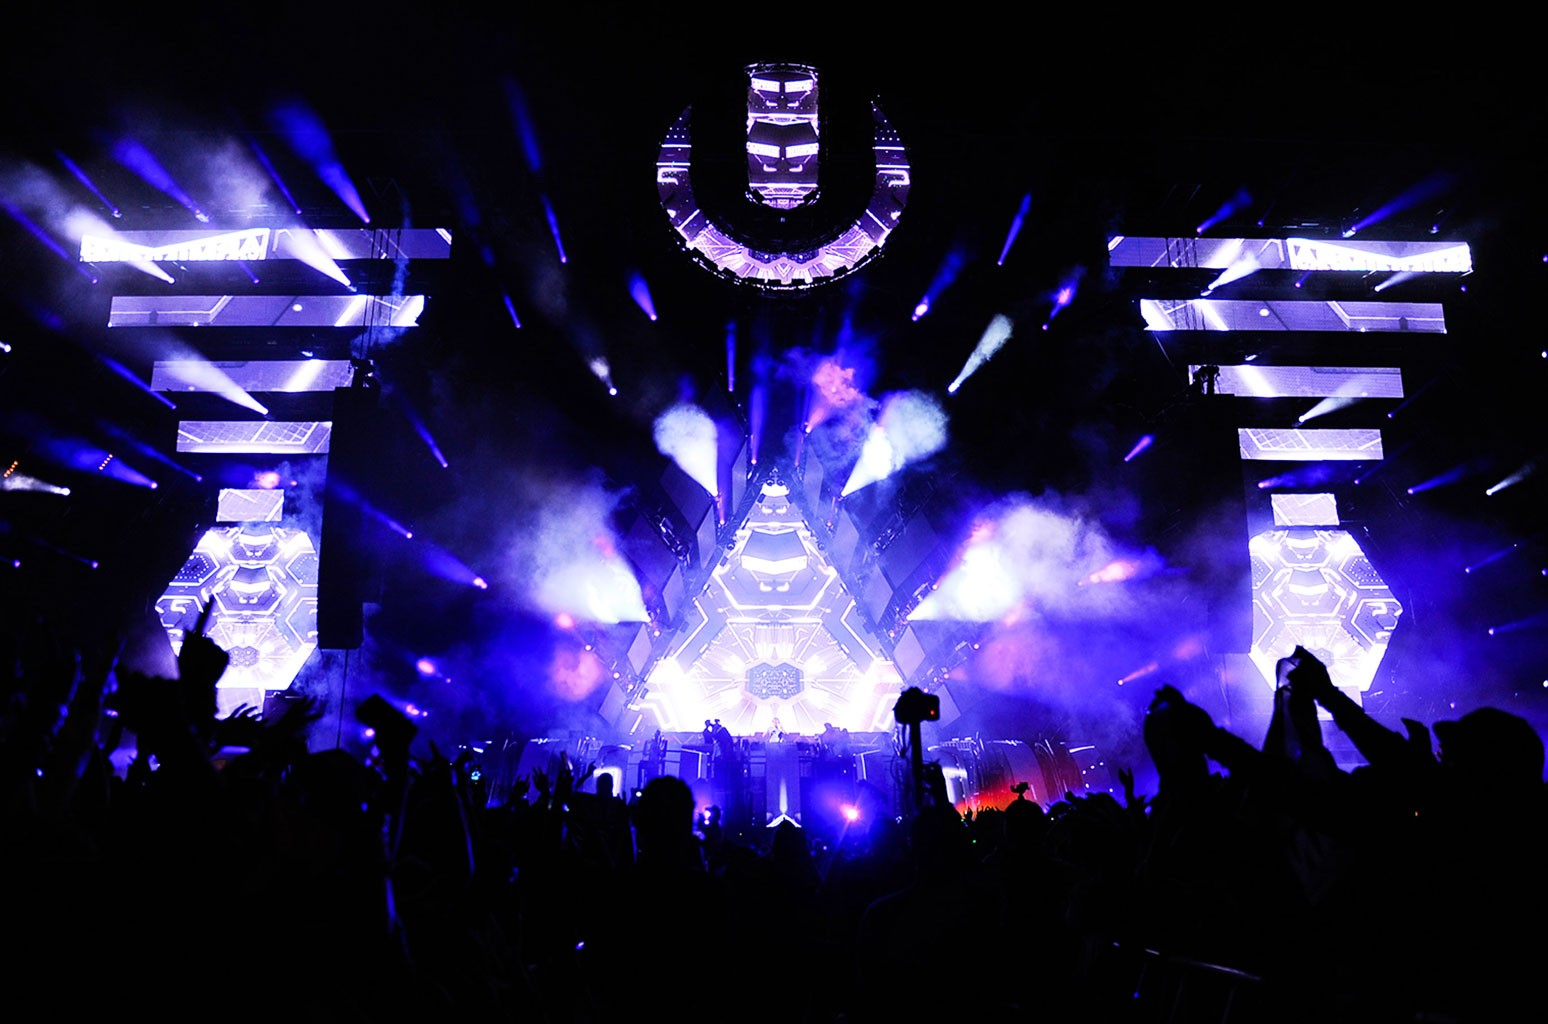 General view of atmosphere at Ultra Music Festival 2016 on March 18, 2016 in Miami.